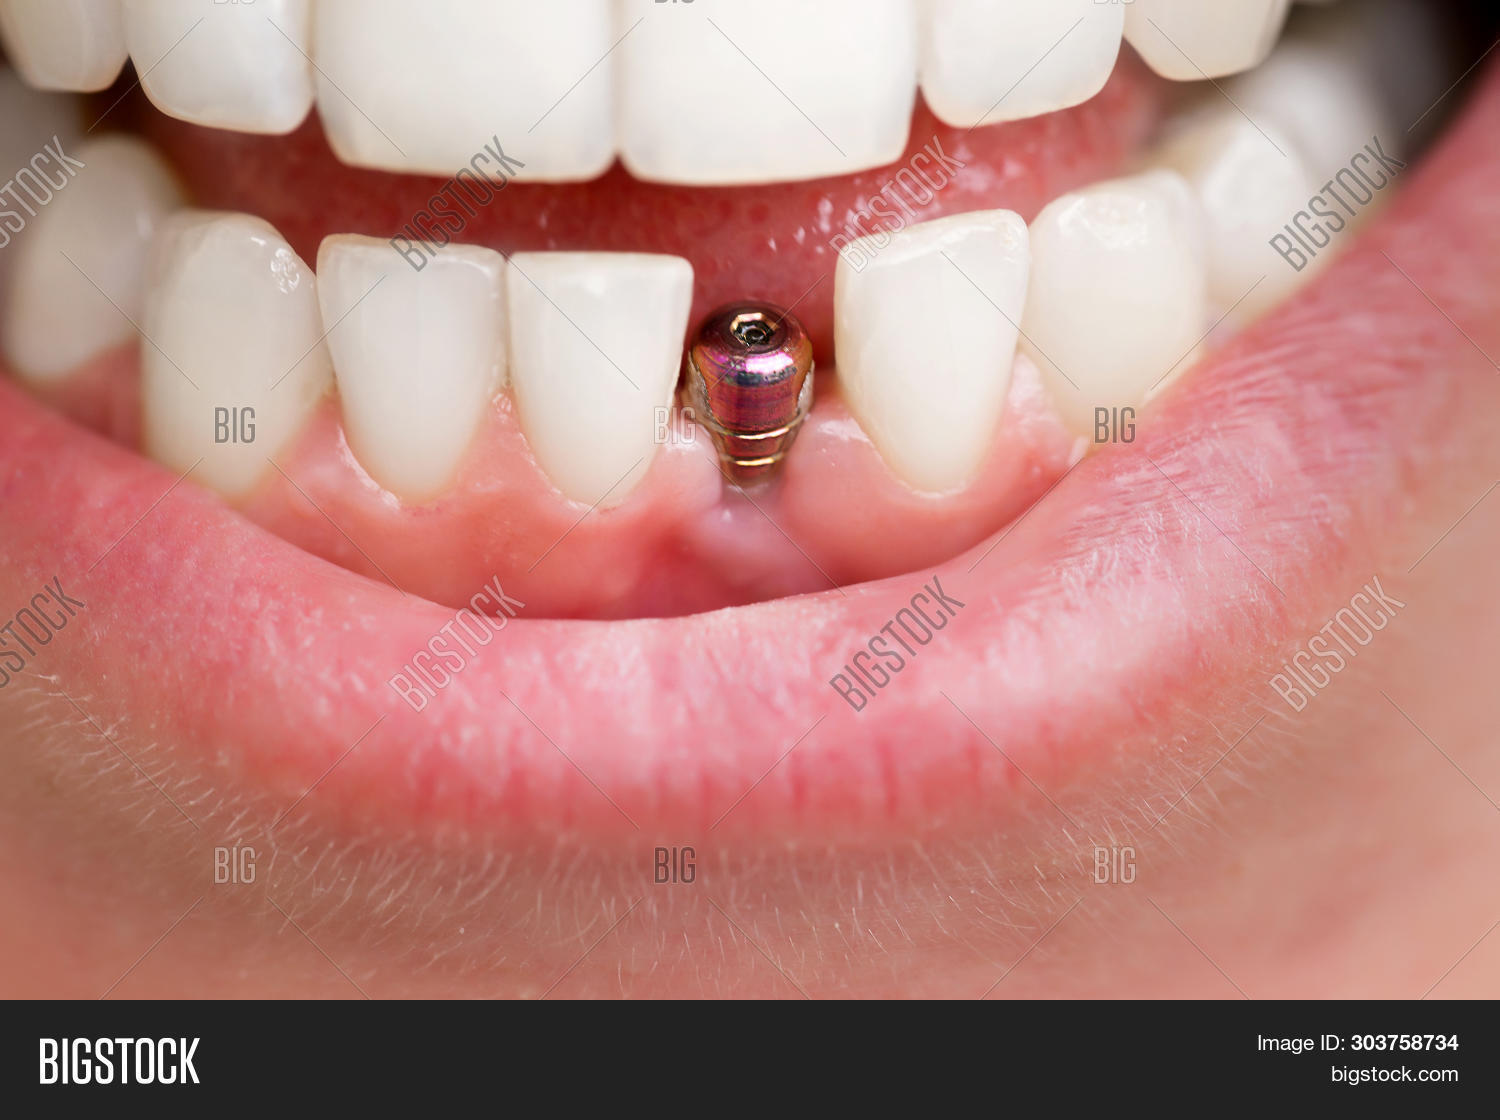 artificial,beautiful,beauty,care,ceramic,clean,clinic,closeup,crown,dental,dentist,dentistry,denture,disease,female,front,happy,health,healthy,human,implant,implantation,implantology,metal,model,mouth,odontology,oral,orthodontic,orthodontist,patient,person,professional,repair,root,smile,surgeon,teeth,tool,tooth,toothache,treatment,visit,whitening,woman,work,young